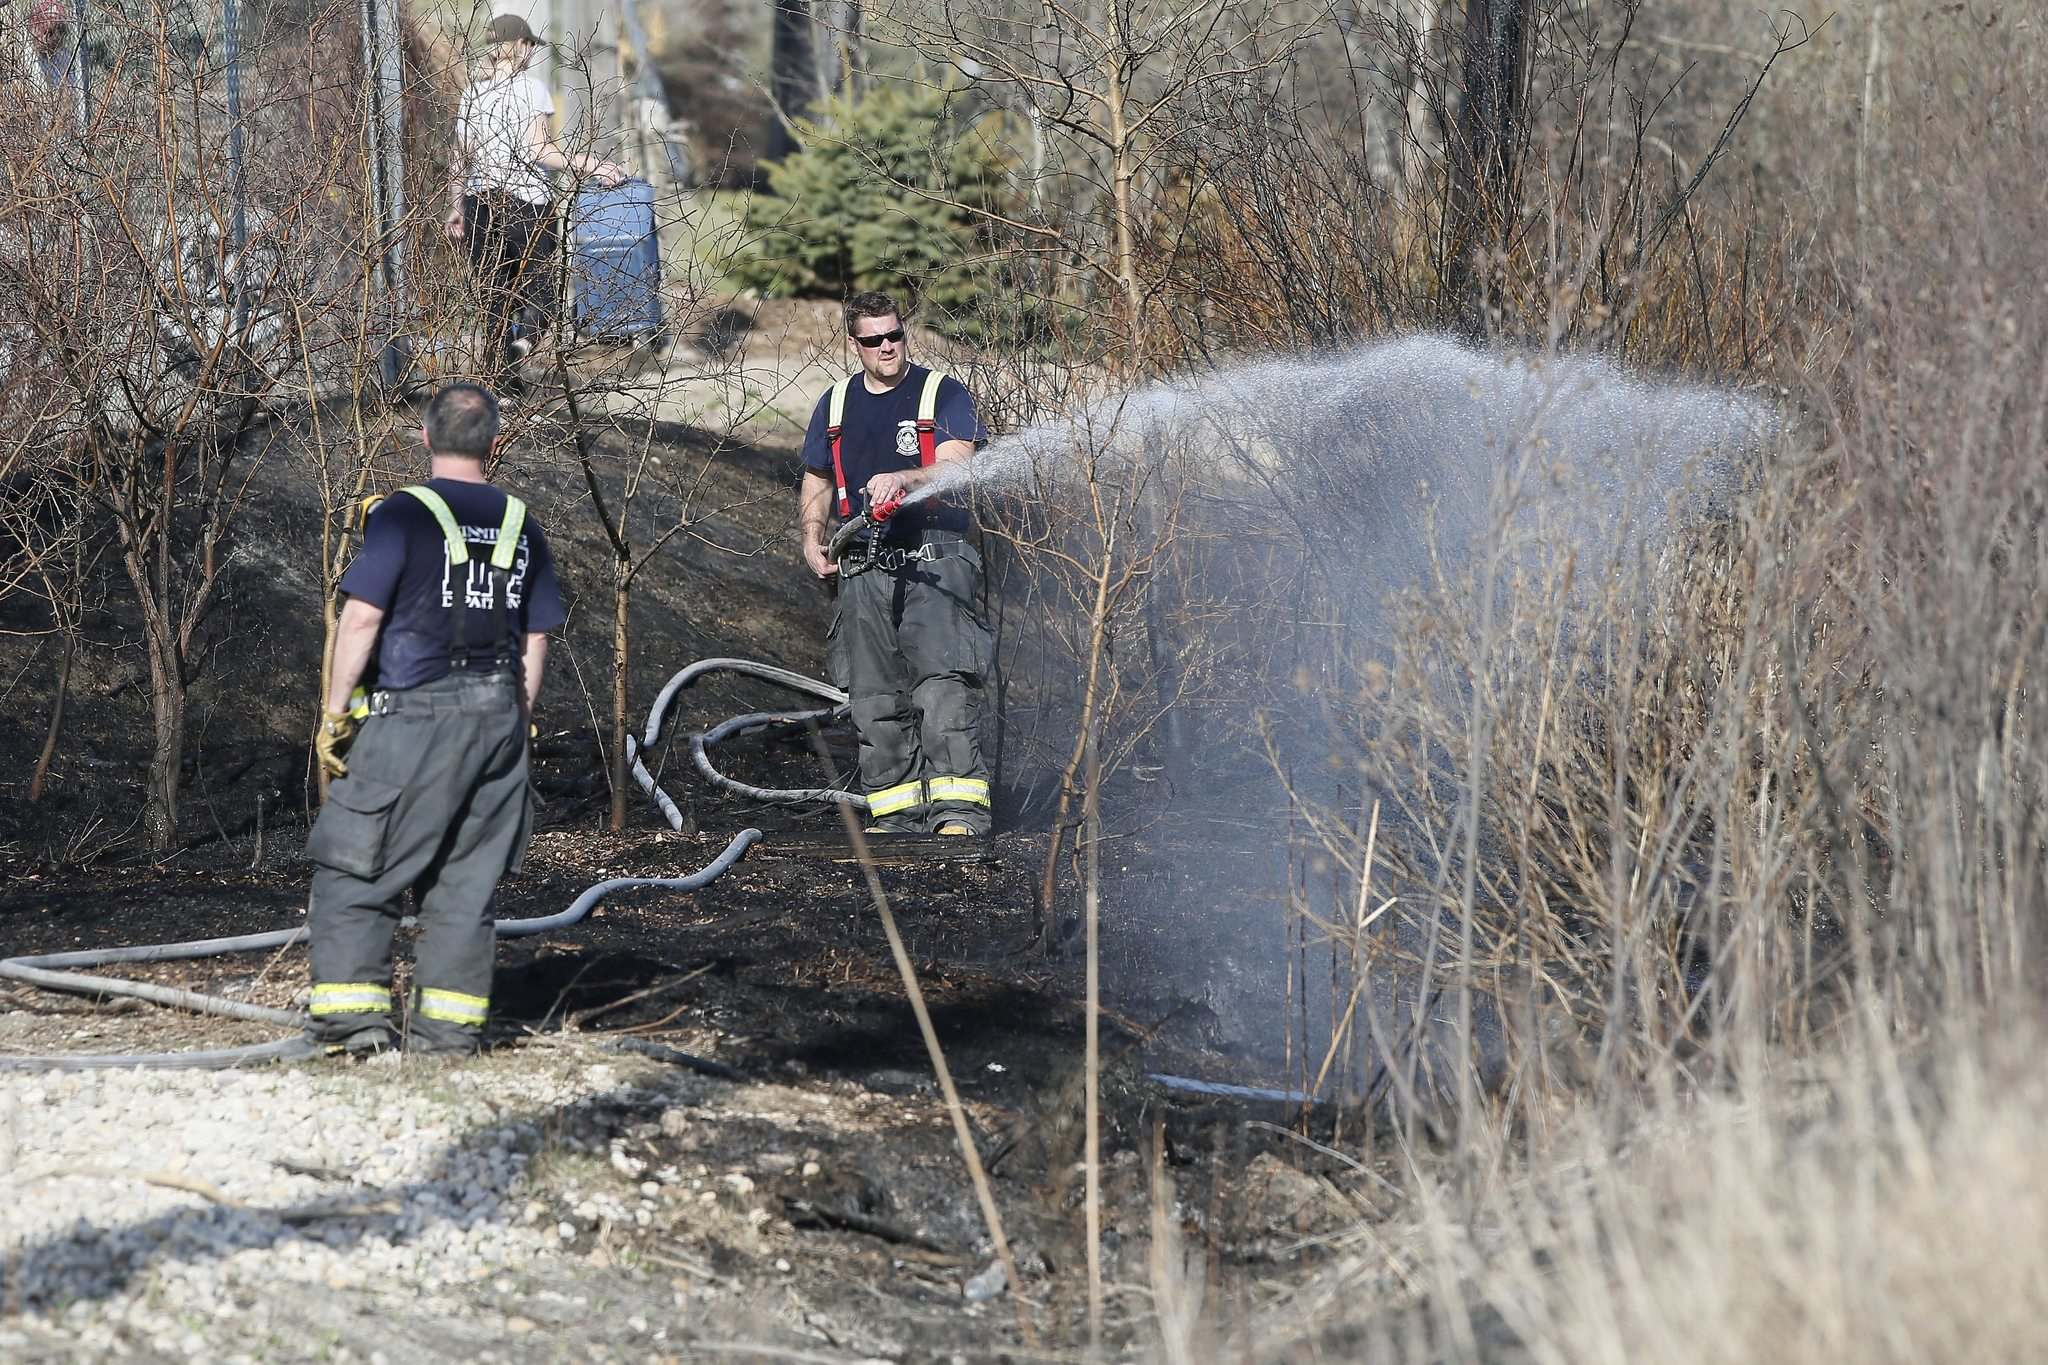 JOHN WOODS / WINNIPEG FREE PRESS files</p><p>A Winnipeg firefighter douses a brush fire.</p>